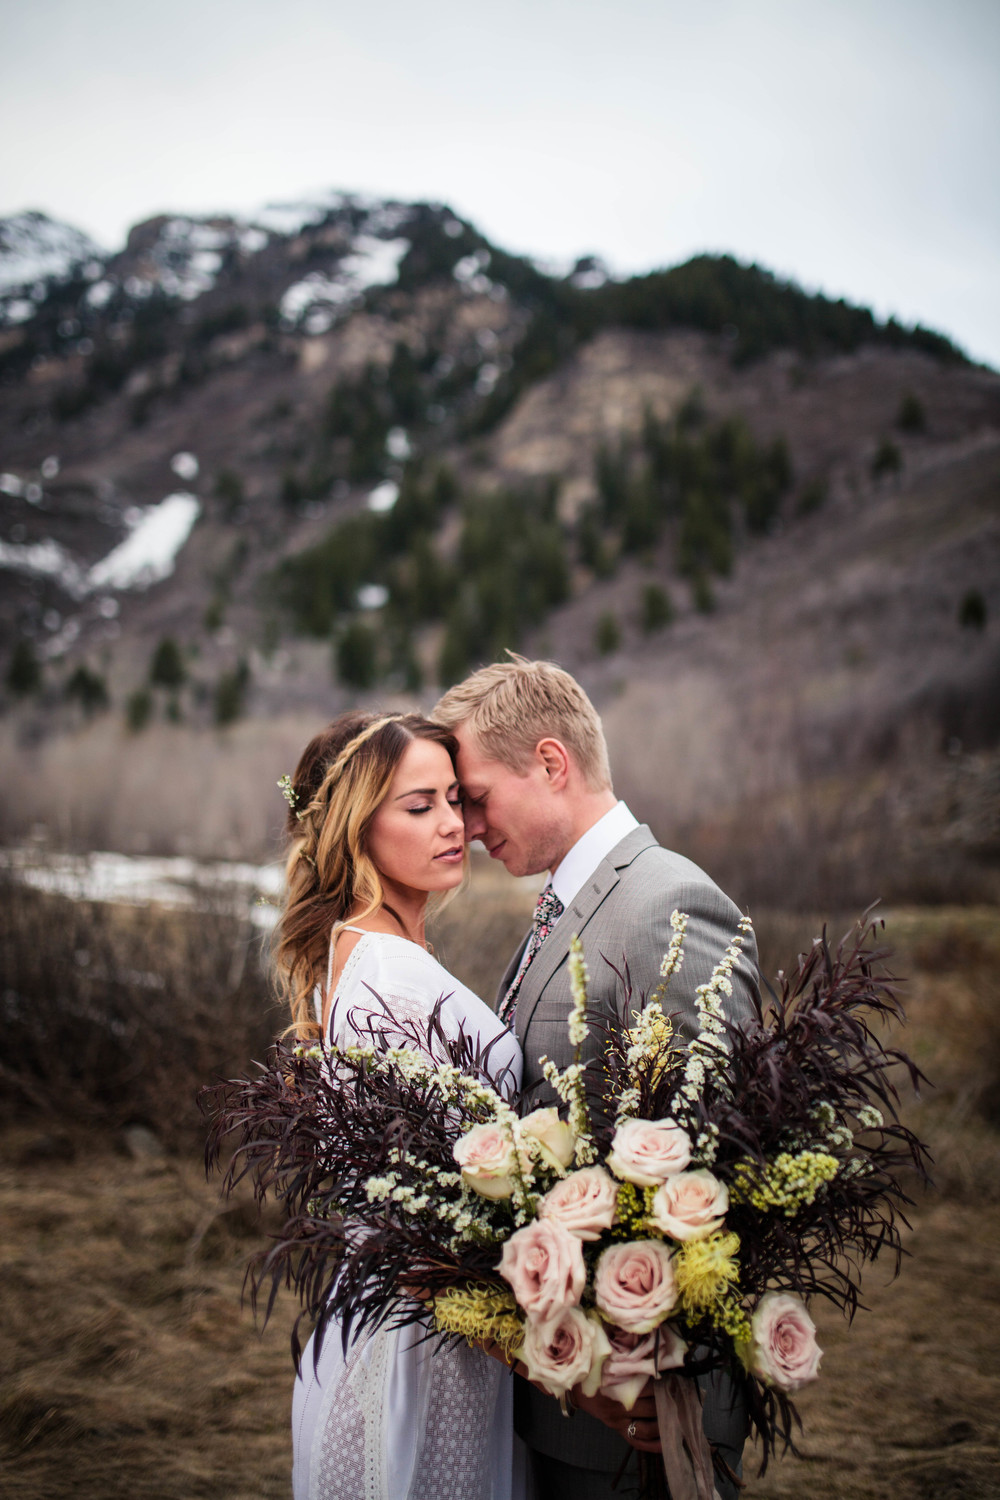 Candace & Thomas - Stylized Elopement - Whitney Justesen Photography-22.jpg